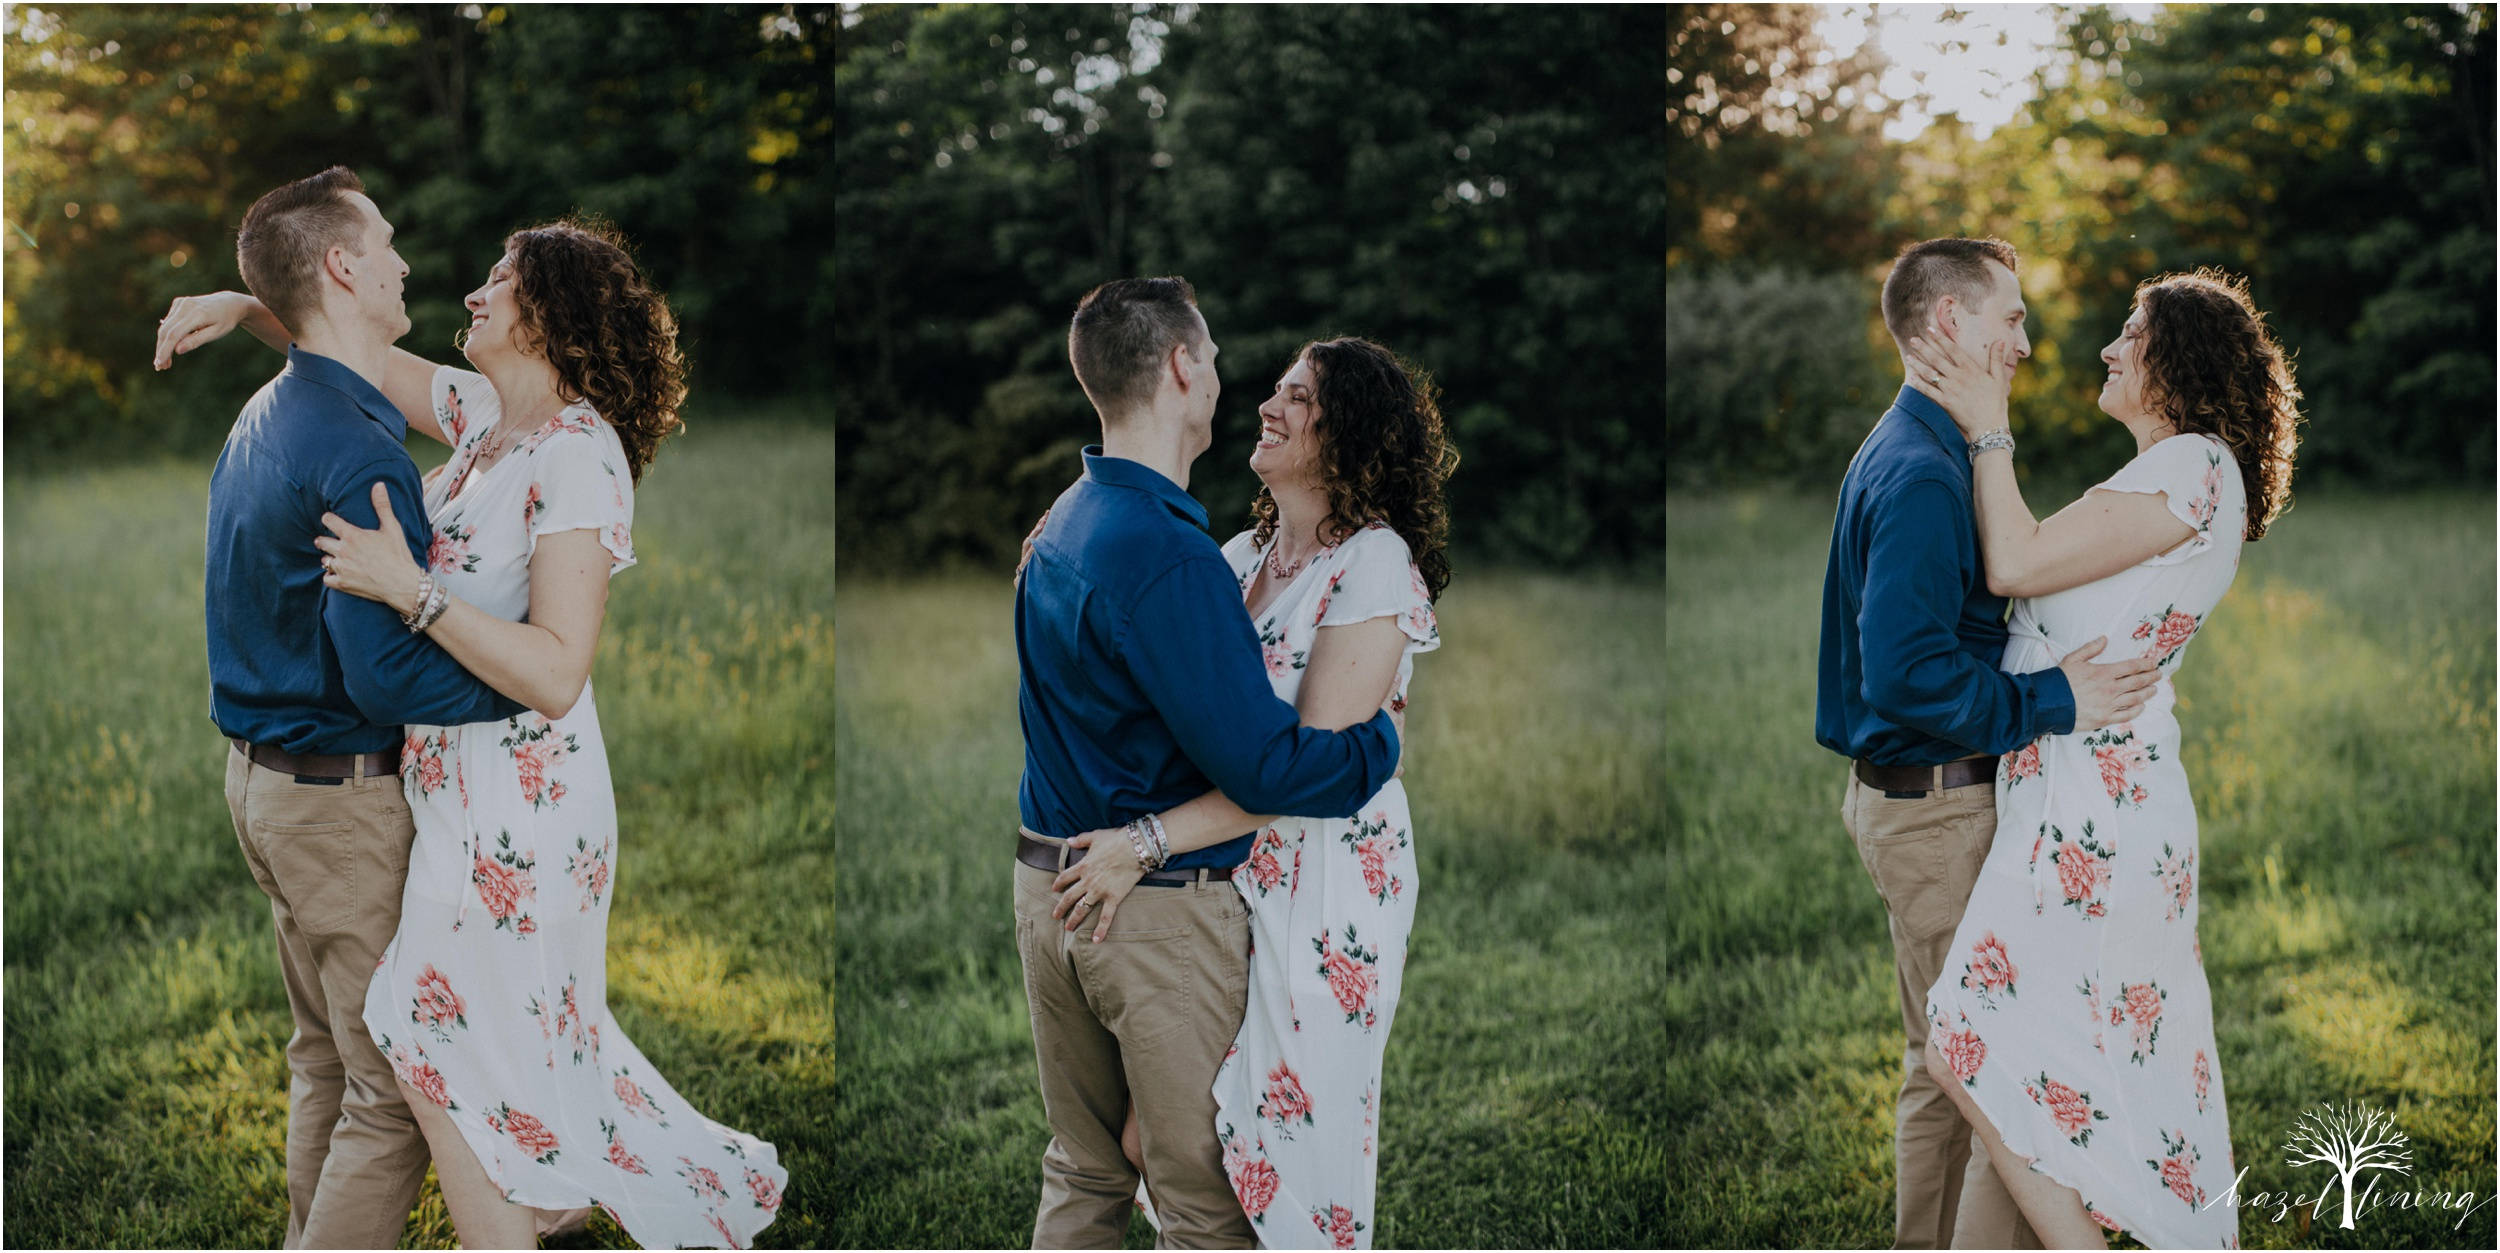 pete-rachelle-sawadski-20-year-anniversary-portrait-session-hazel-lining-photography-destination-elopement-wedding-engagement-photography_0280.jpg